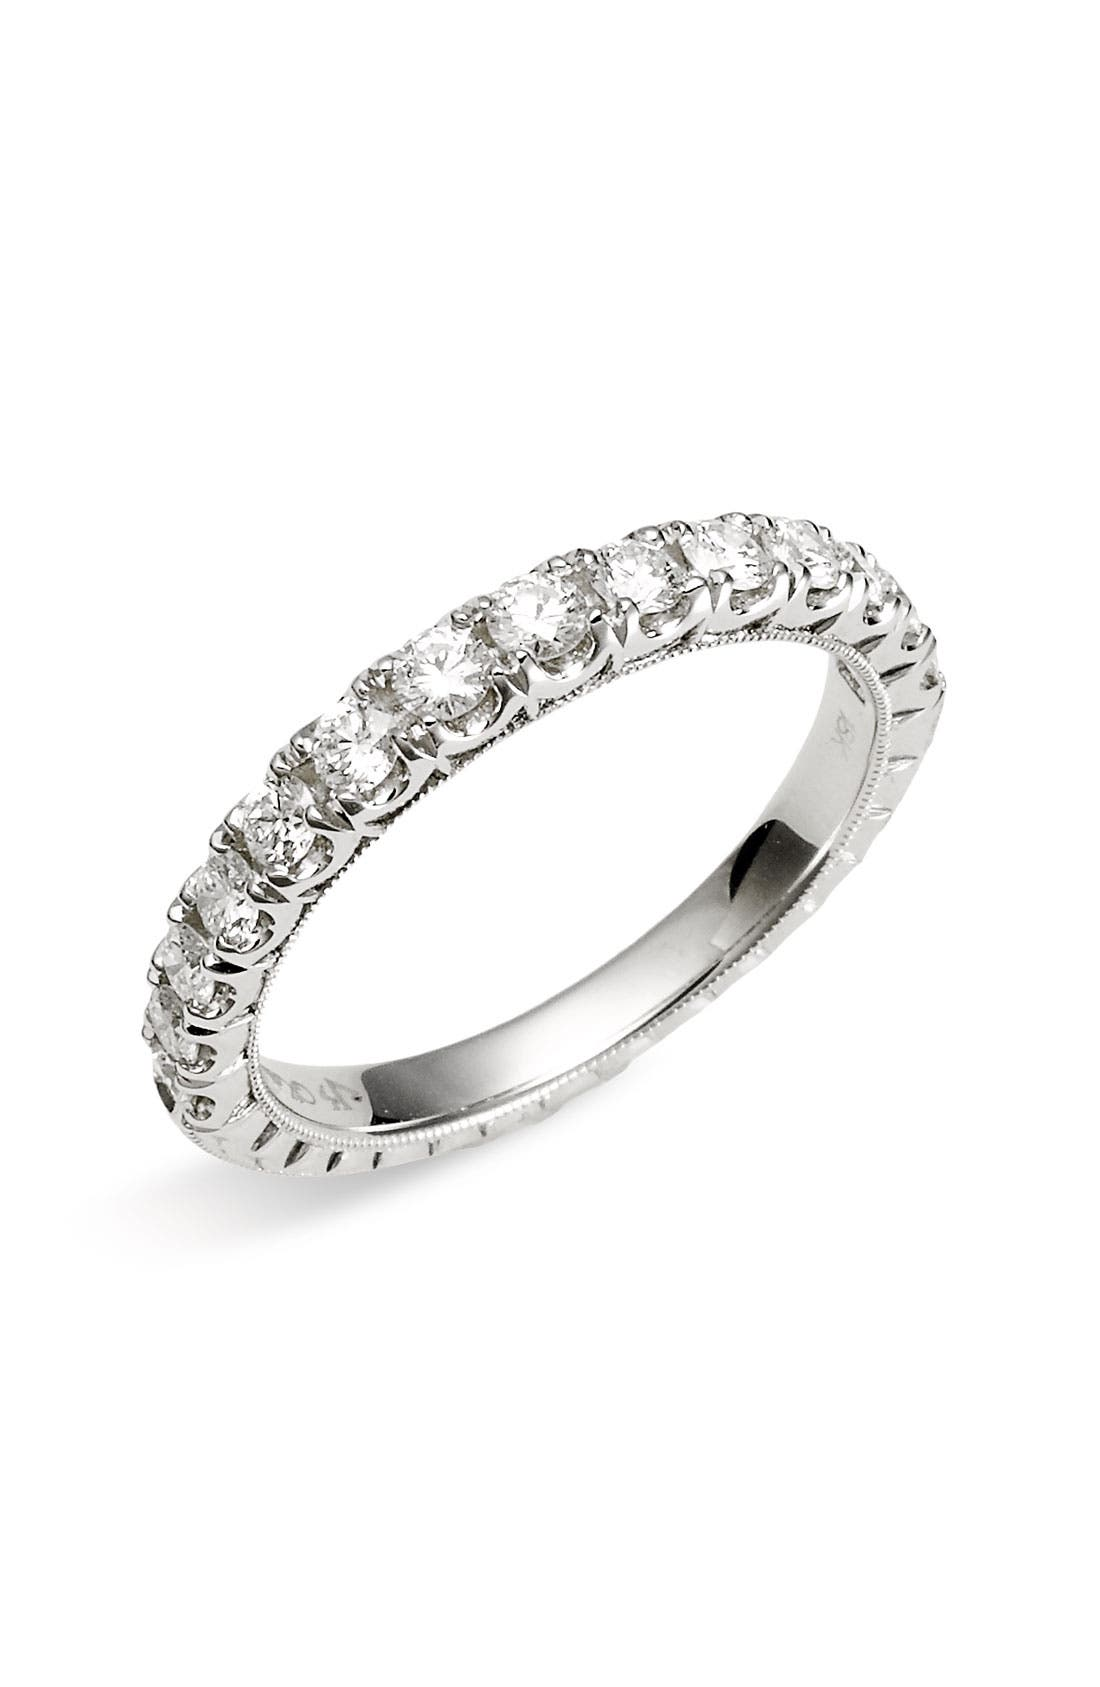 Main Image - Jack Kelége 'Romance' Diamond Ring